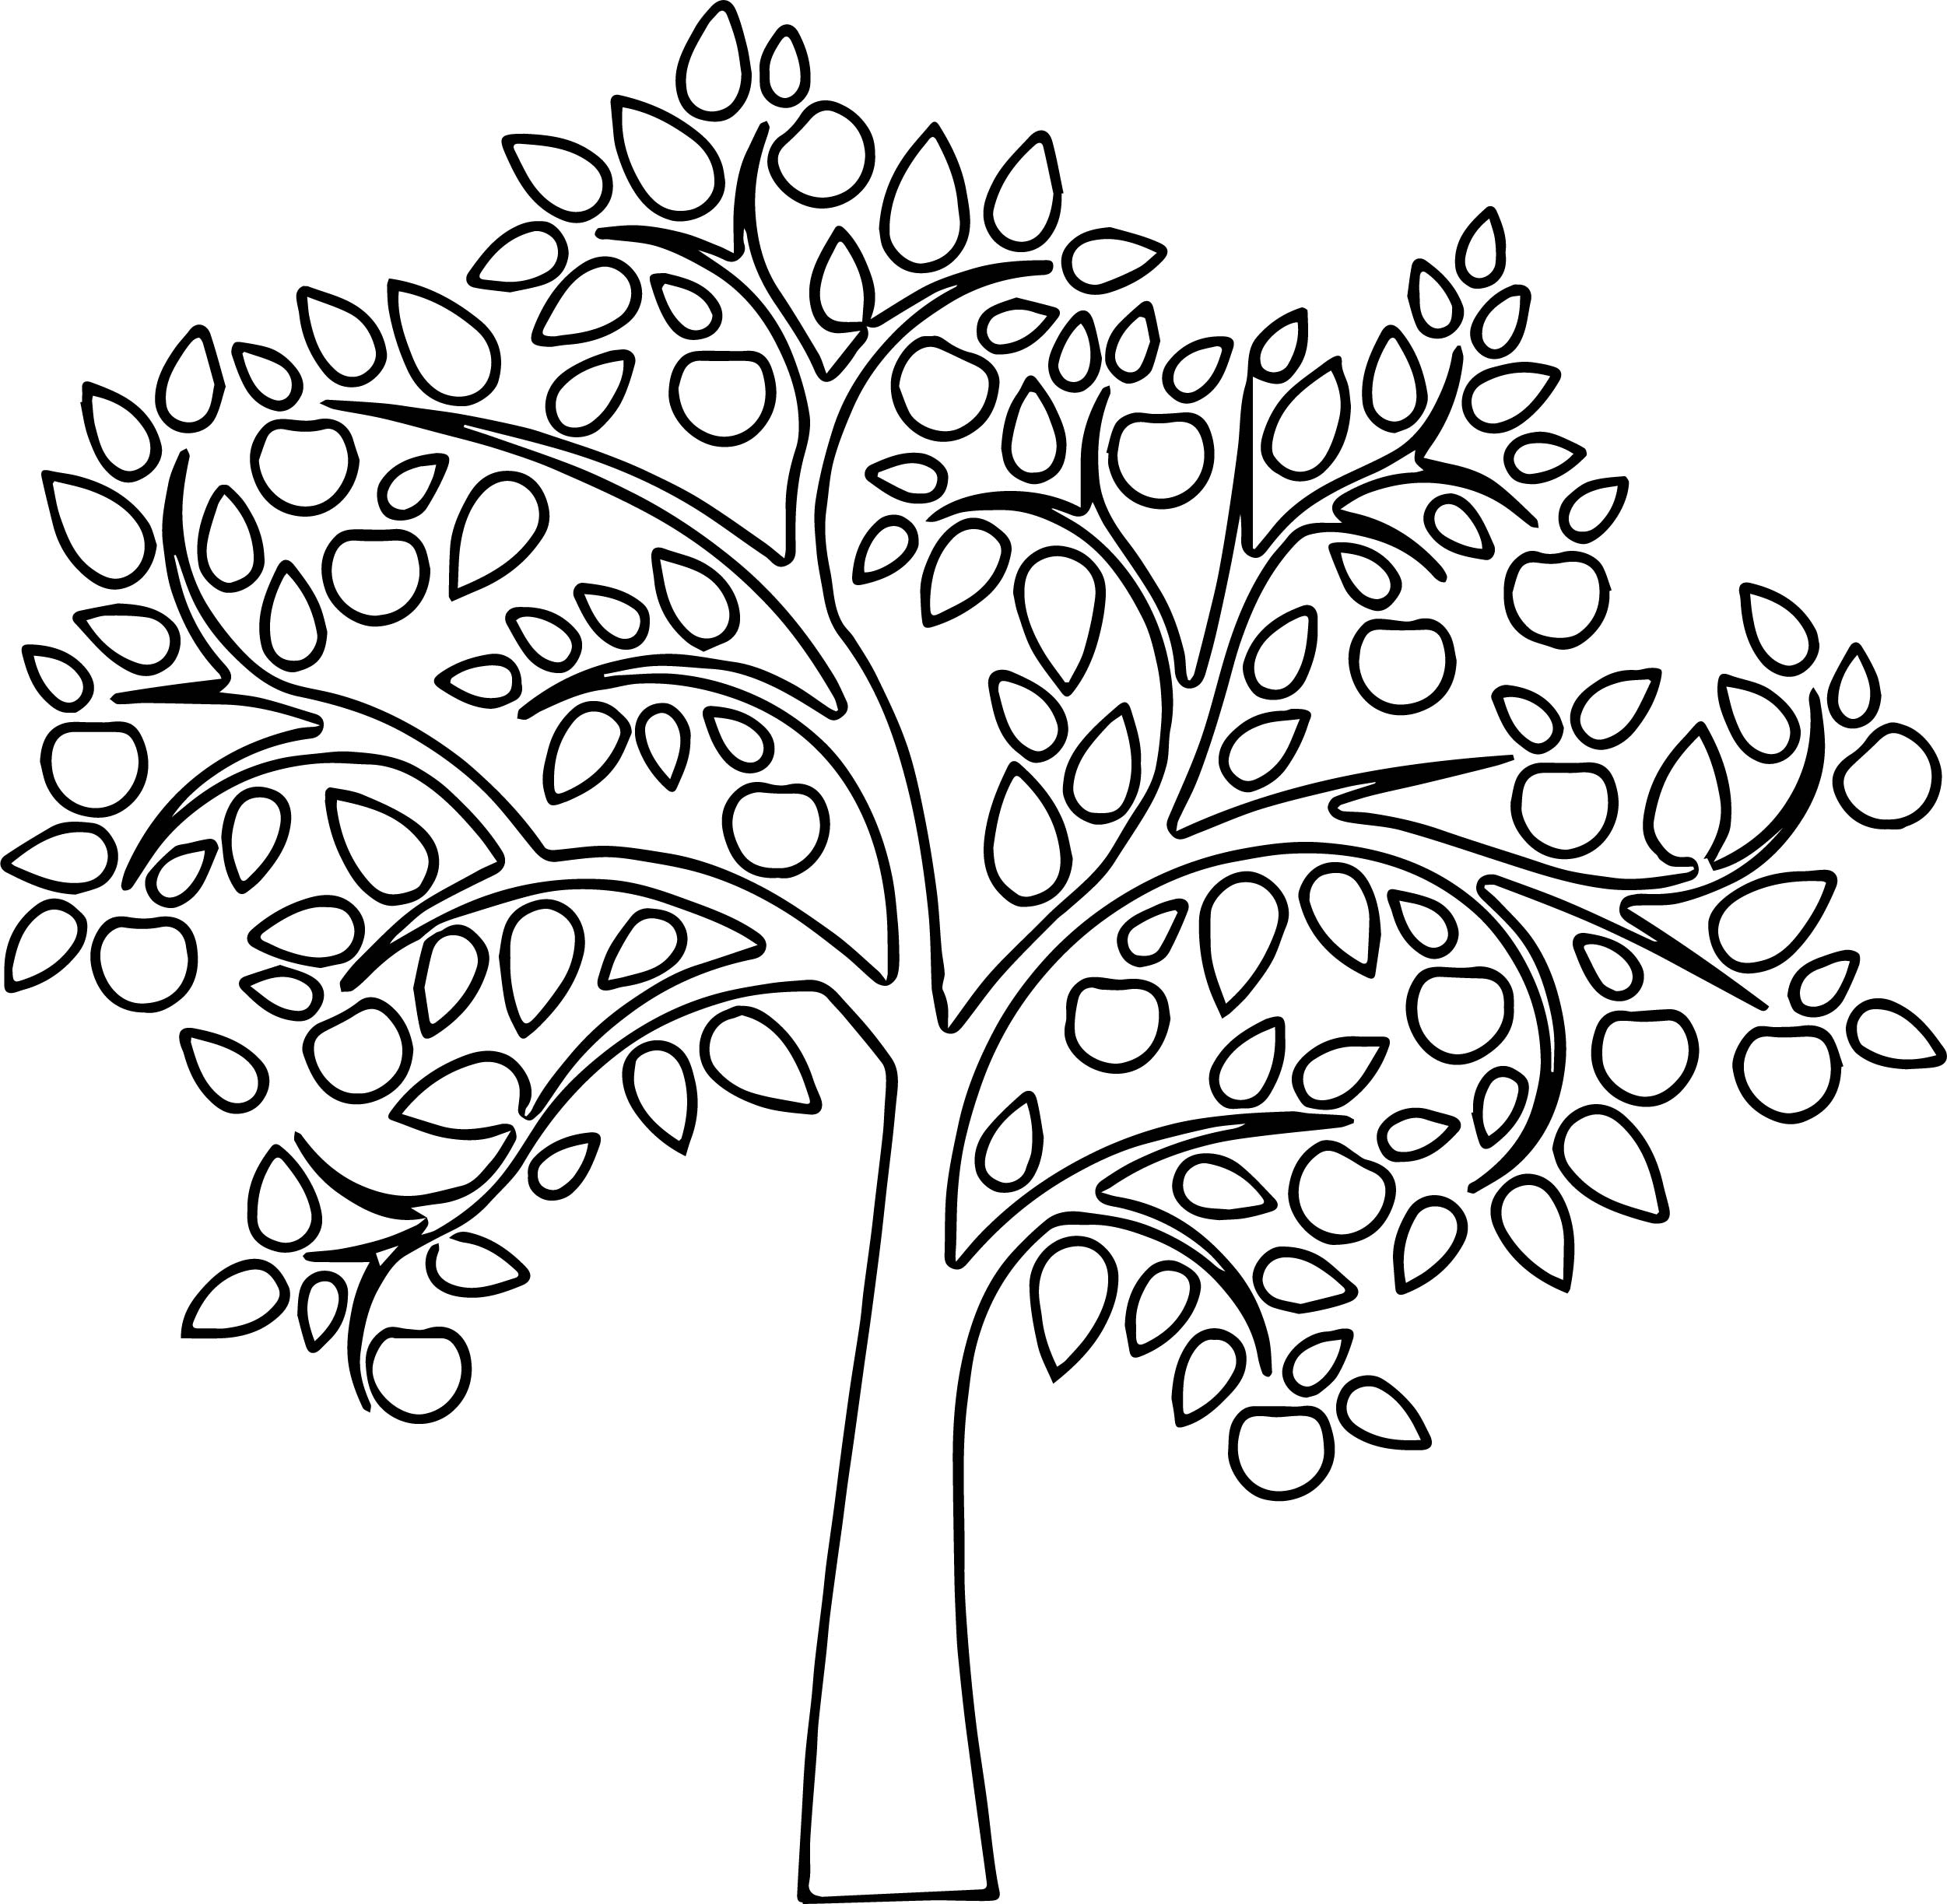 fresh apple tree coloring page - Apple Tree Coloring Page